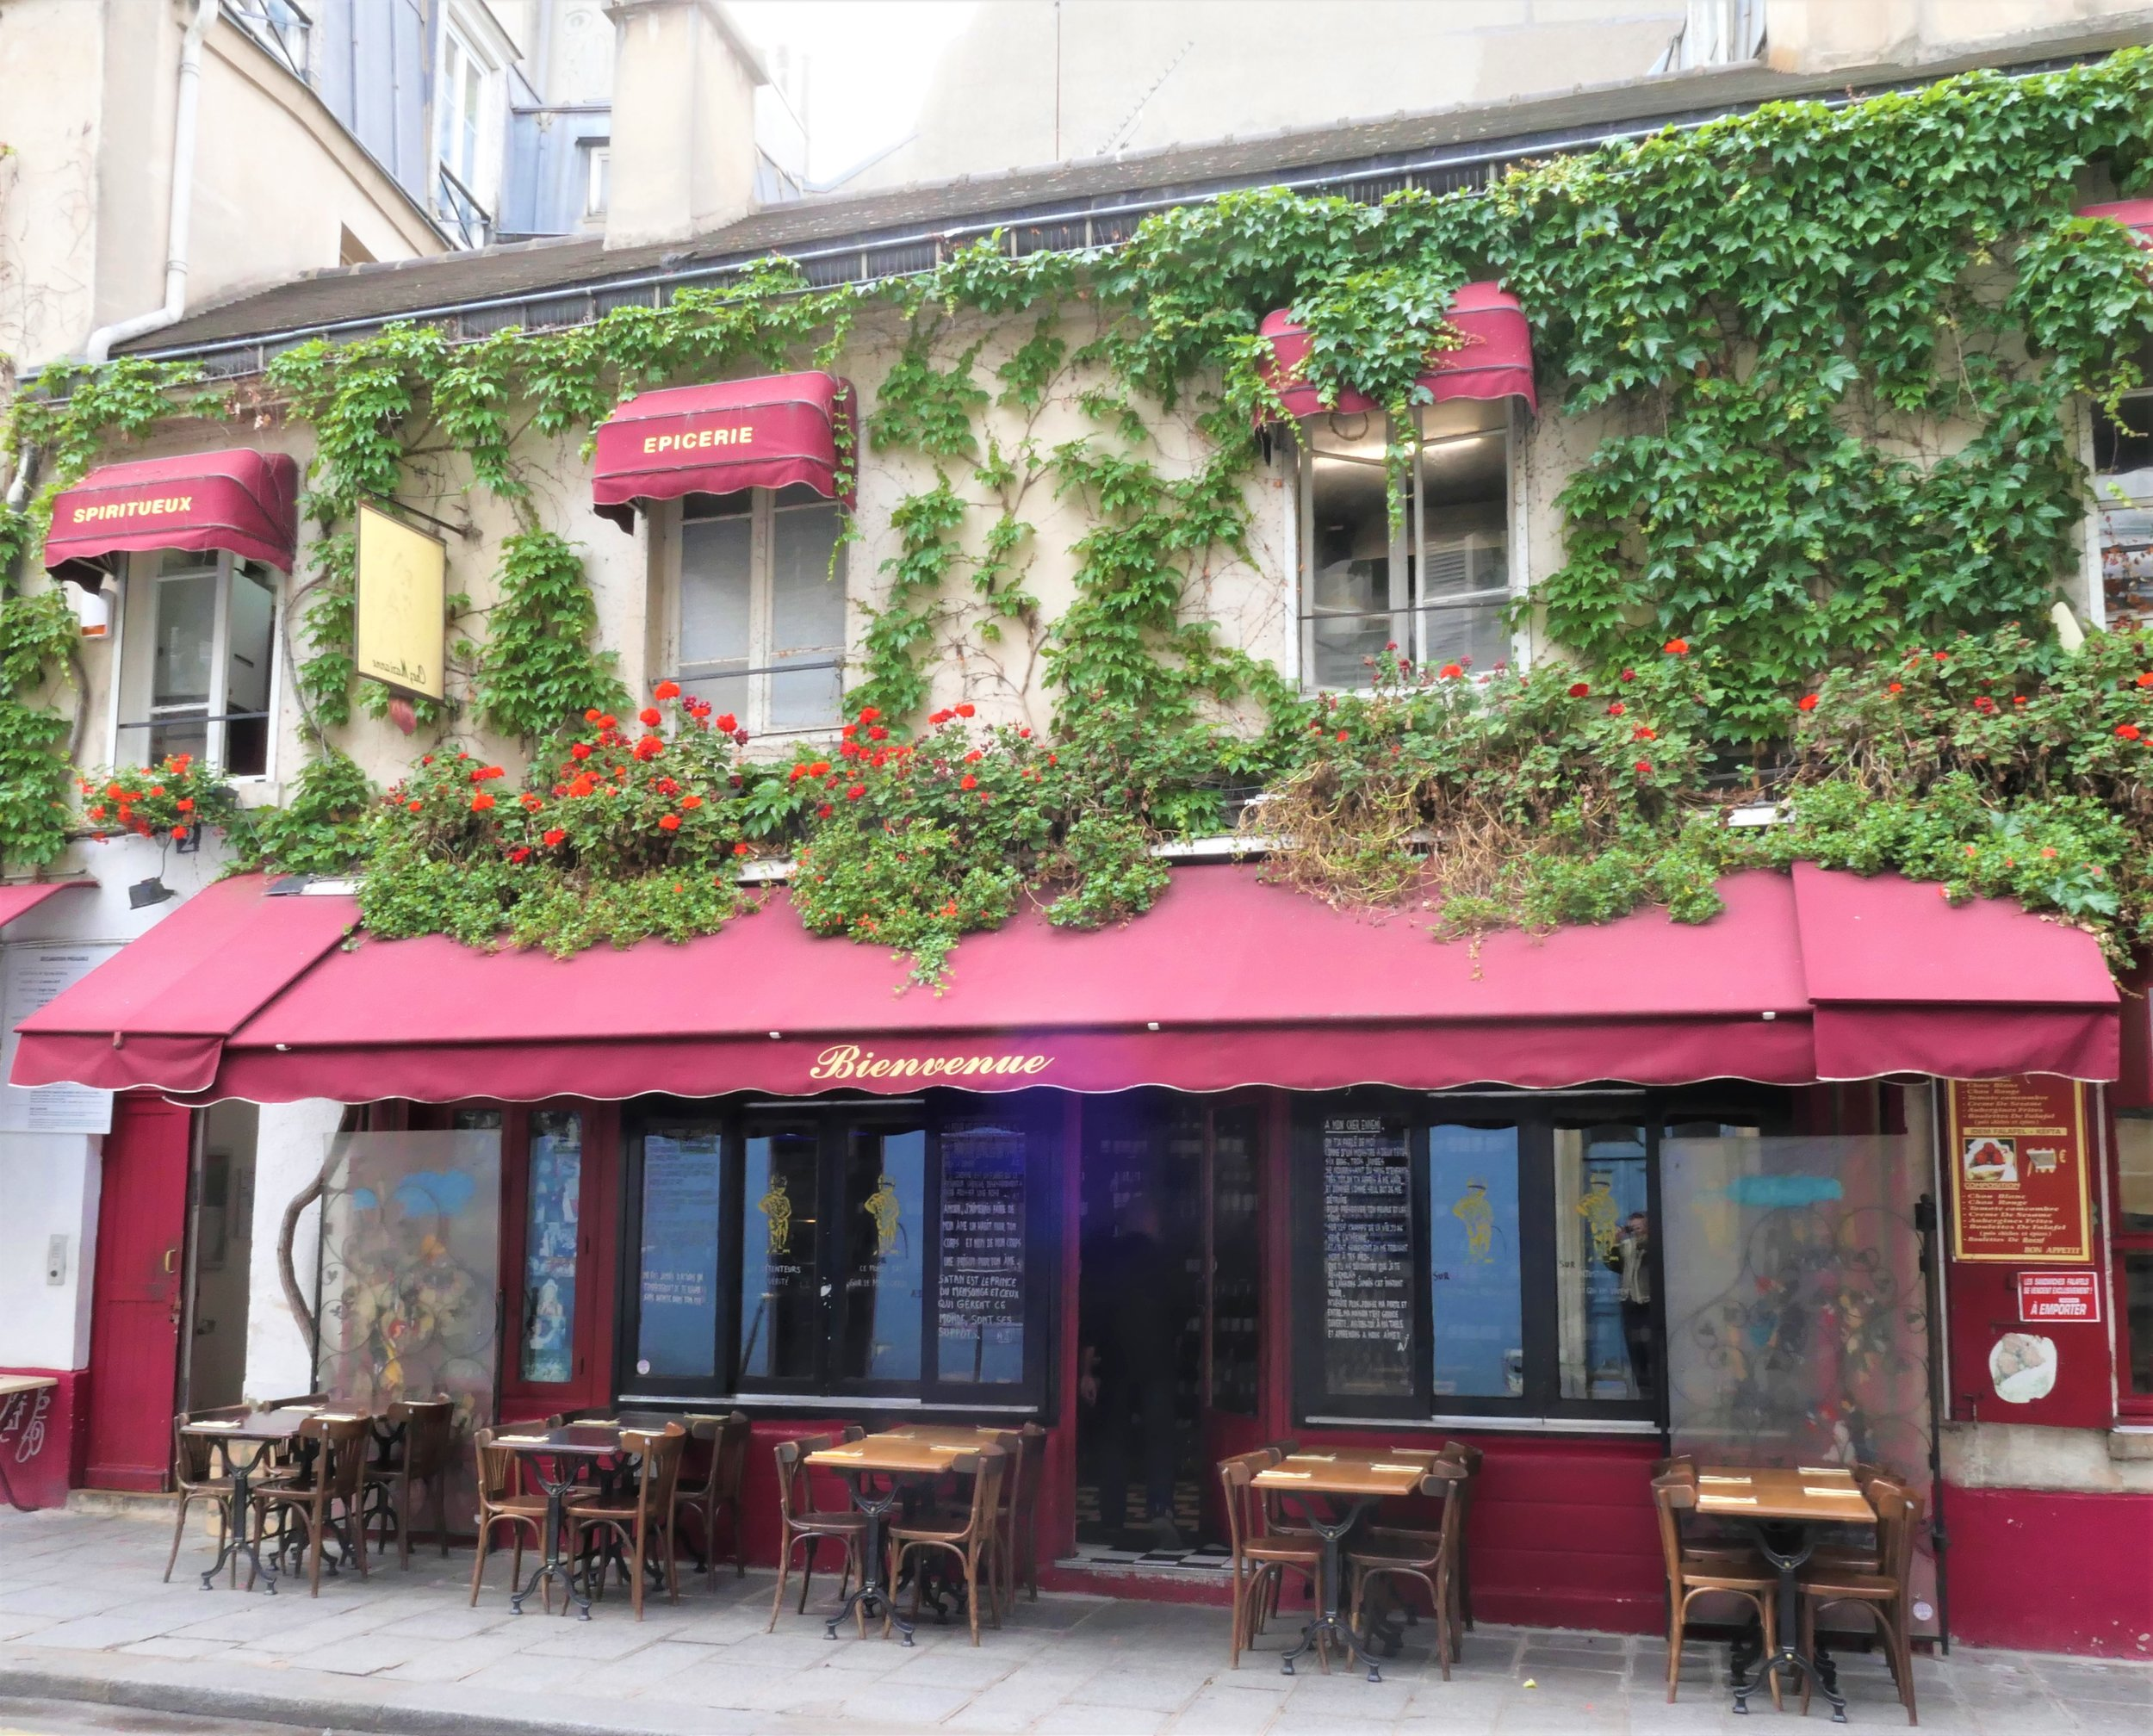 RuePigalle_Blog_ParisProvence_Travel_BestOf_JewelryTrip_paris bistro 2.JPG